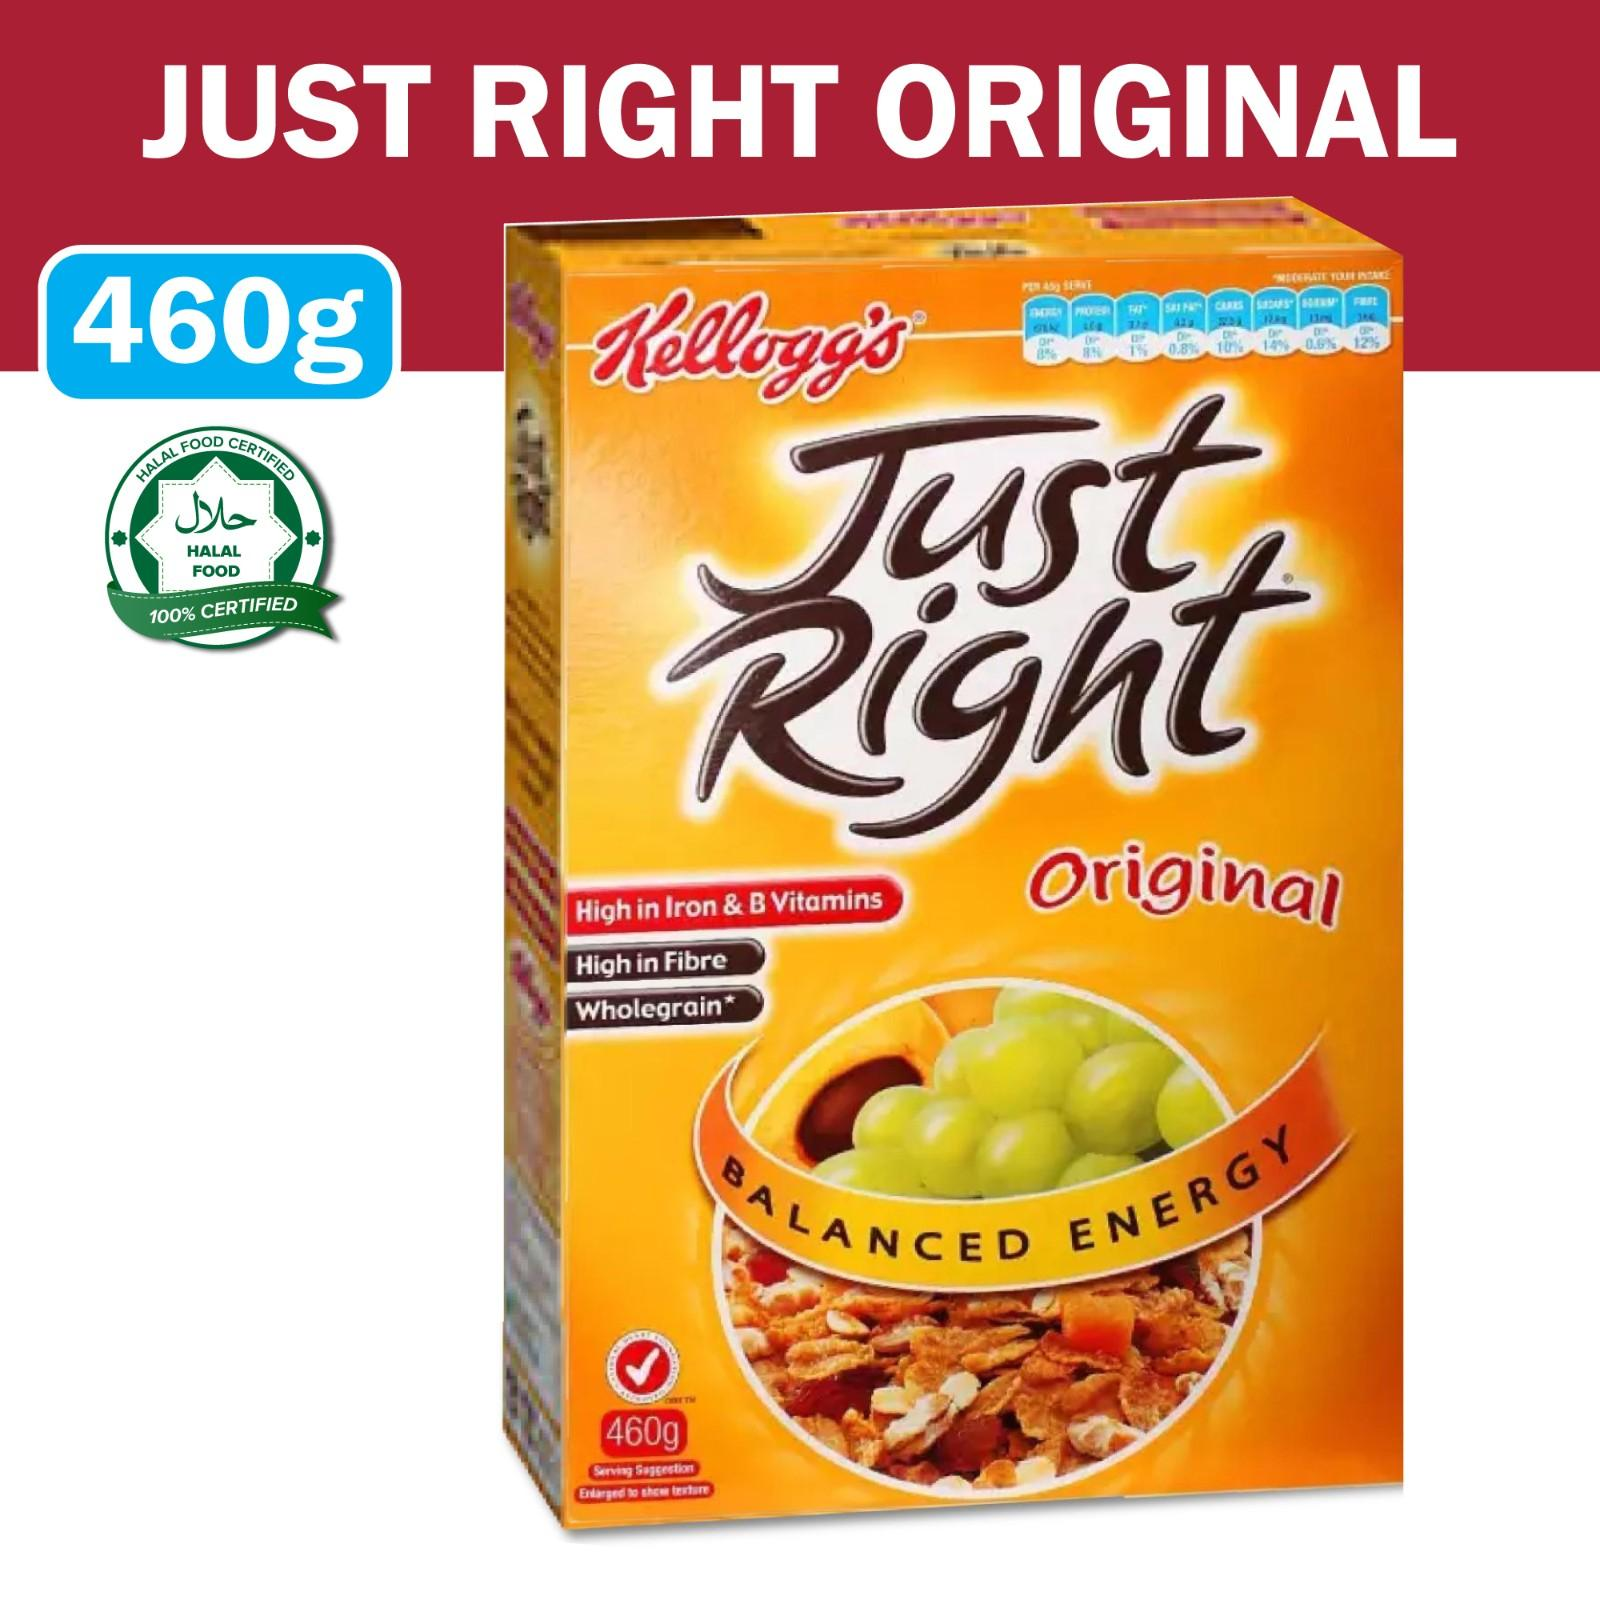 Kellogg's Just Right Original Breakfast Cereal